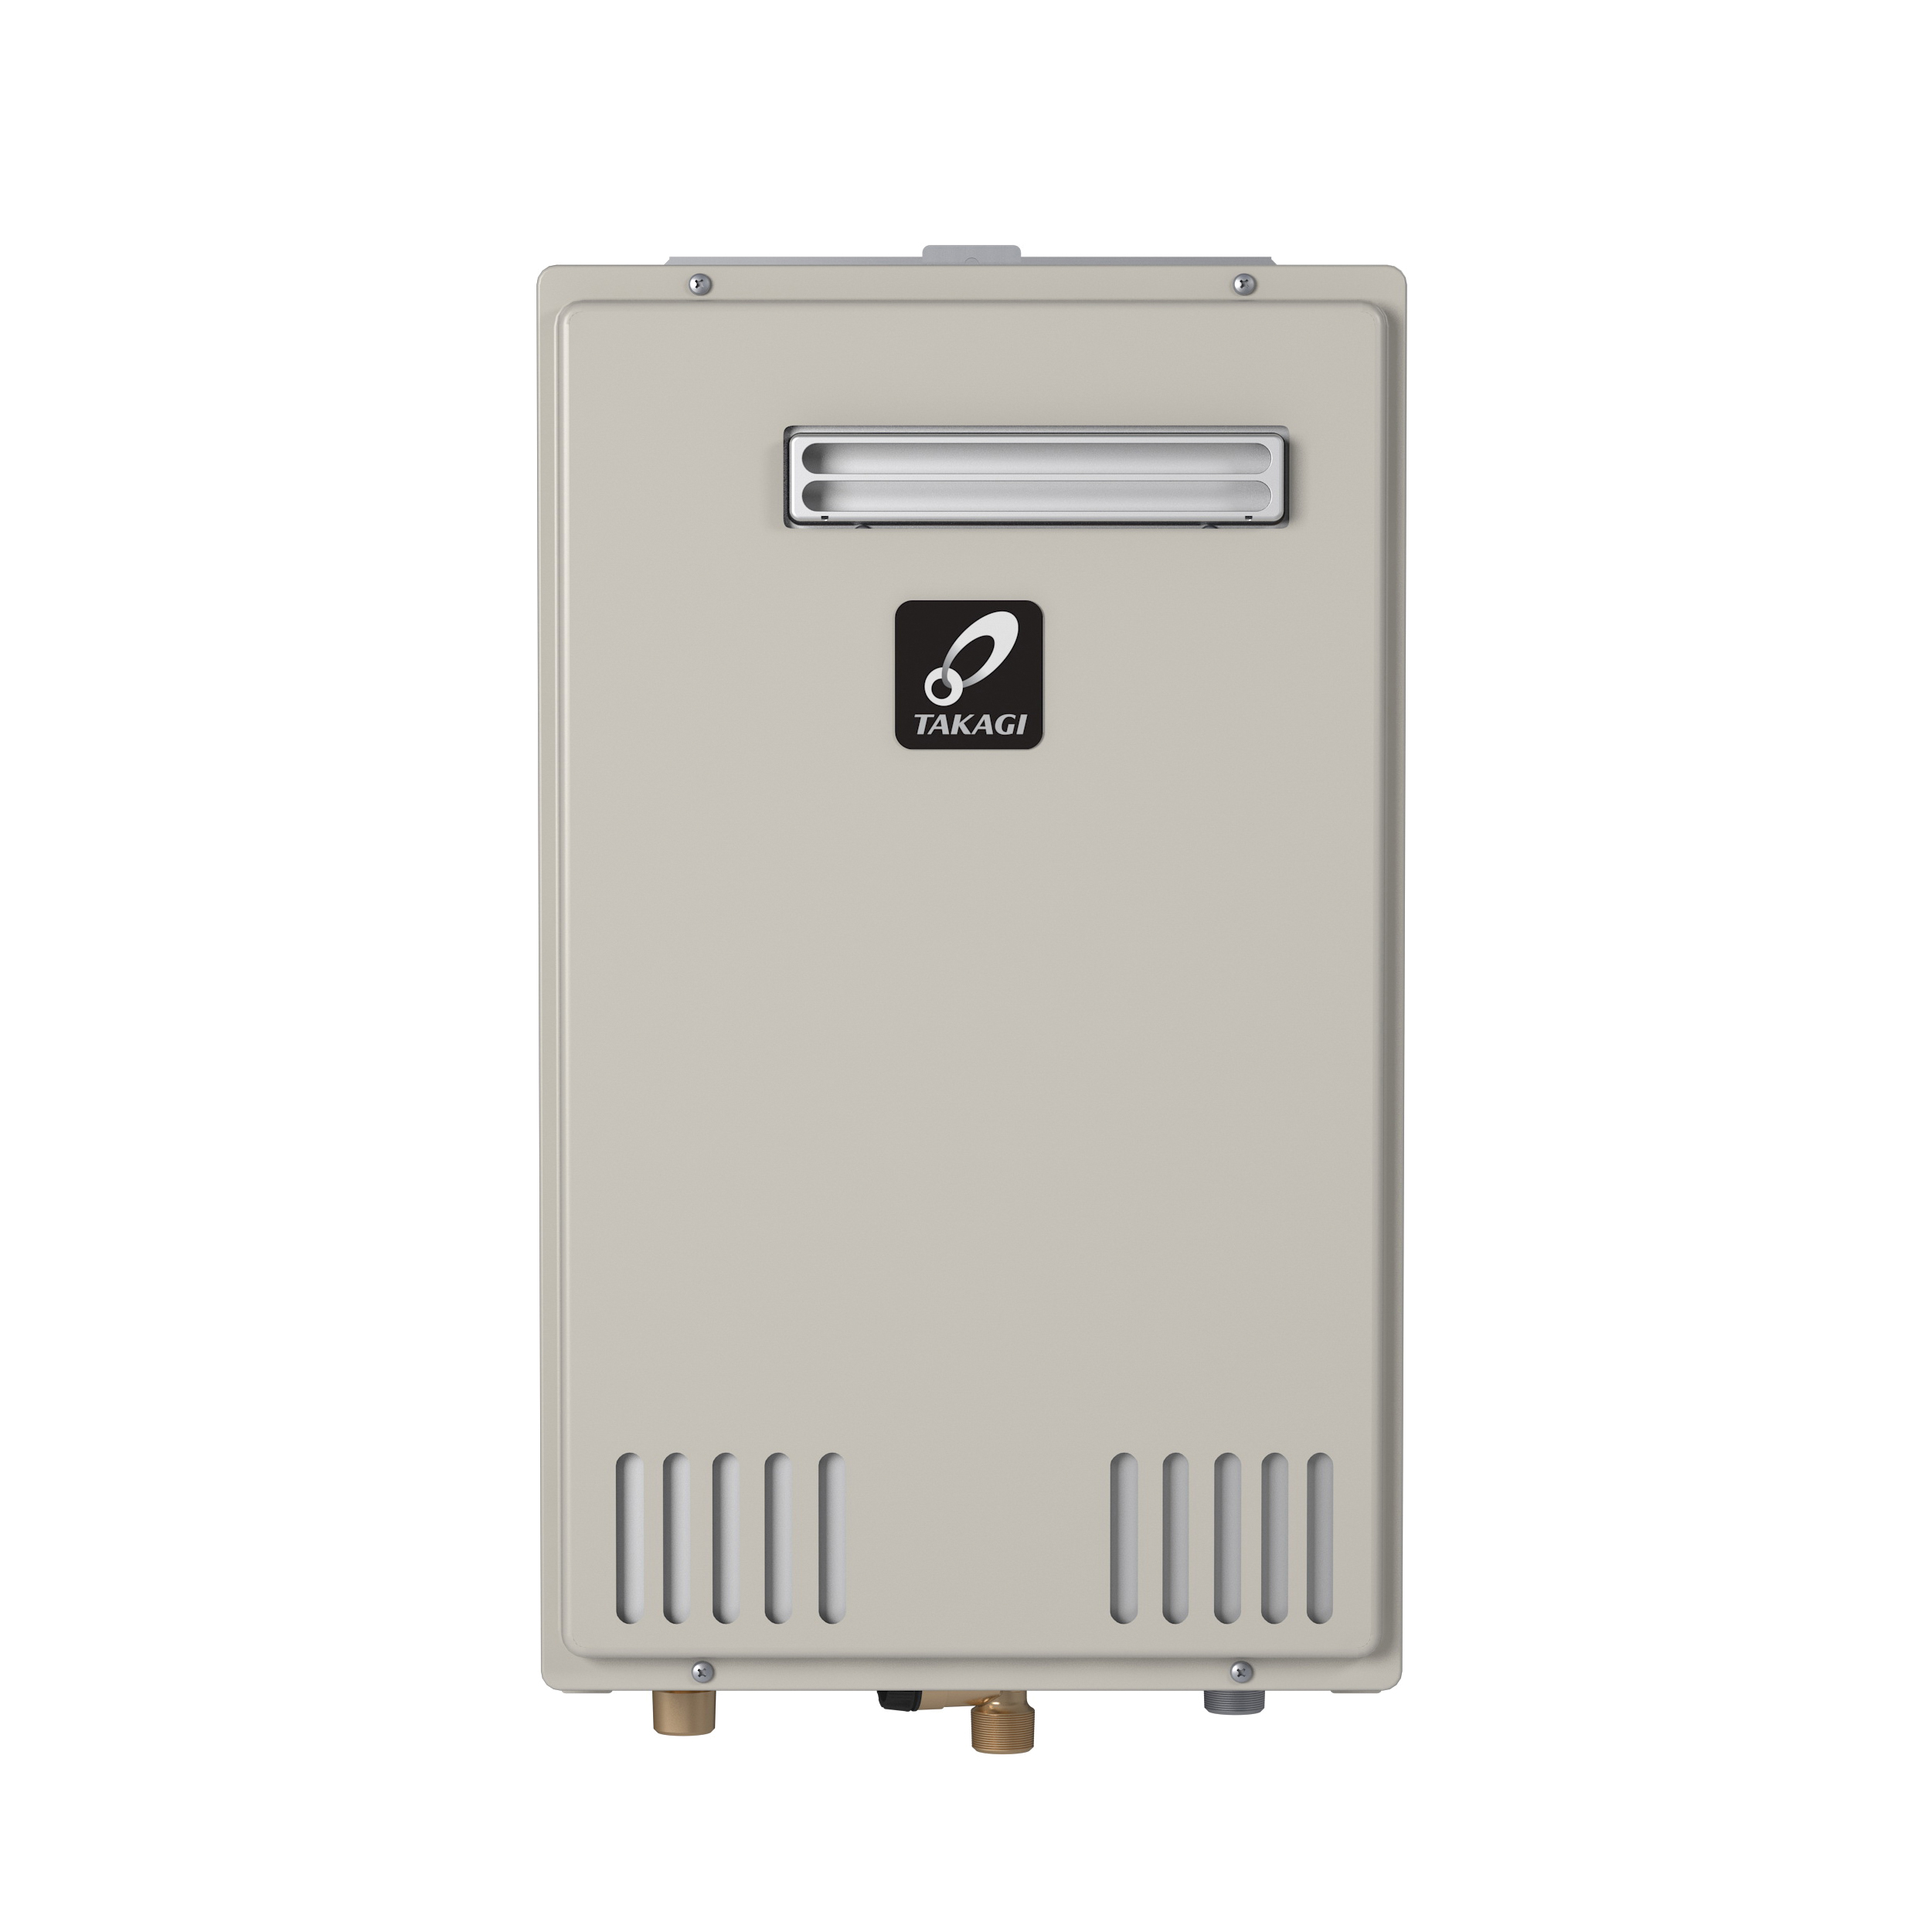 Takagi TH3MOSLP H3M Tankless Water Heater, Liquid Propane Fuel, 120000 Btu/hr Heating, Indoor/Outdoor: Outdoor, Condensing/Non Condensing: Condensing, 6.6 gpm, 4 in, 0.91, Commercial/Residential/Dual: Residential, Ultra Low NOx: Yes